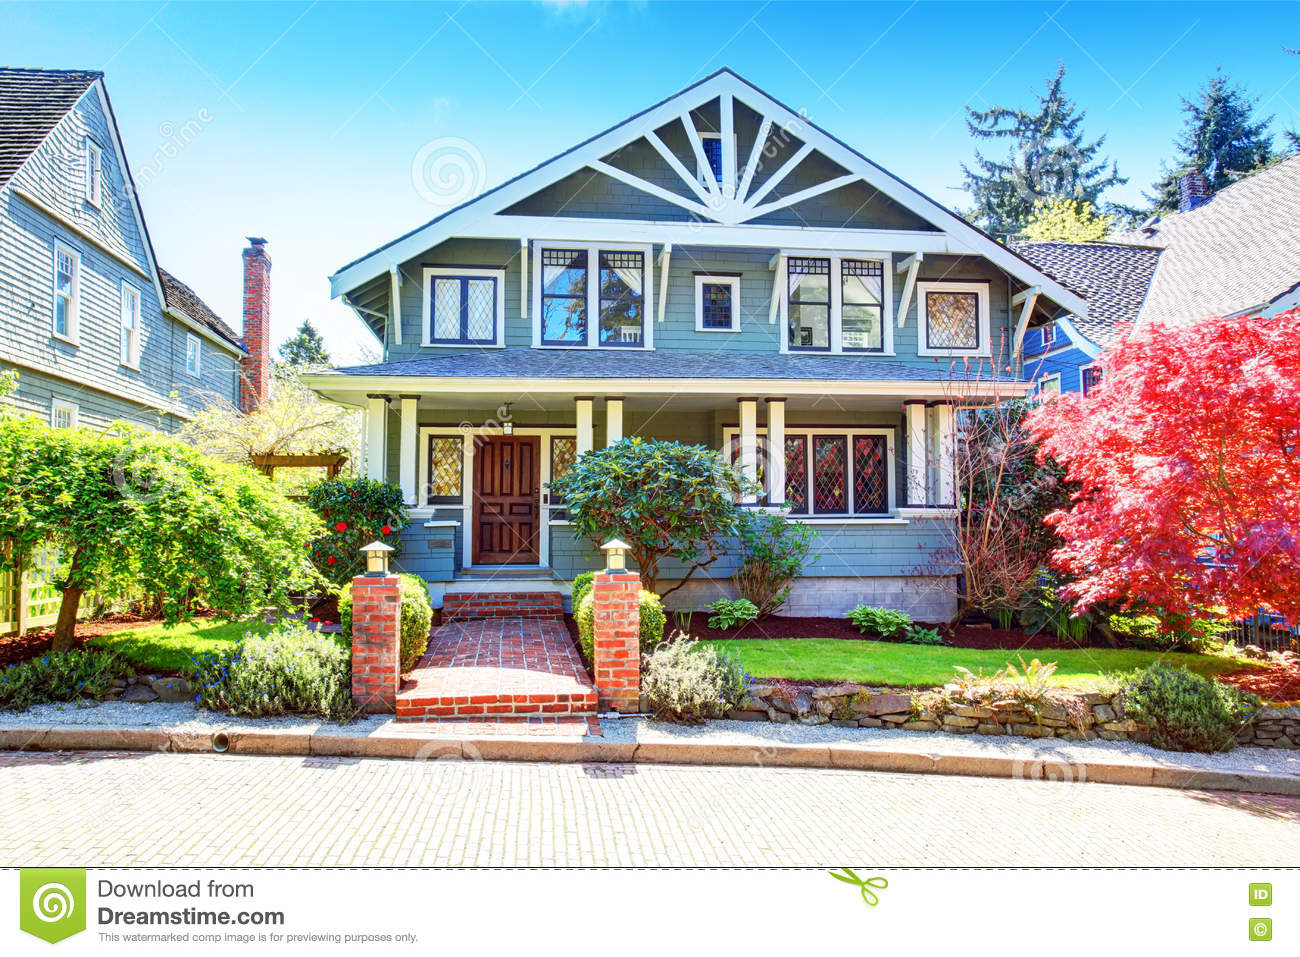 Covered front porch craftsman style home royalty free stock image - Large Luxury Blue Craftsman Classic American House Exterior Royalty Free Stock Image